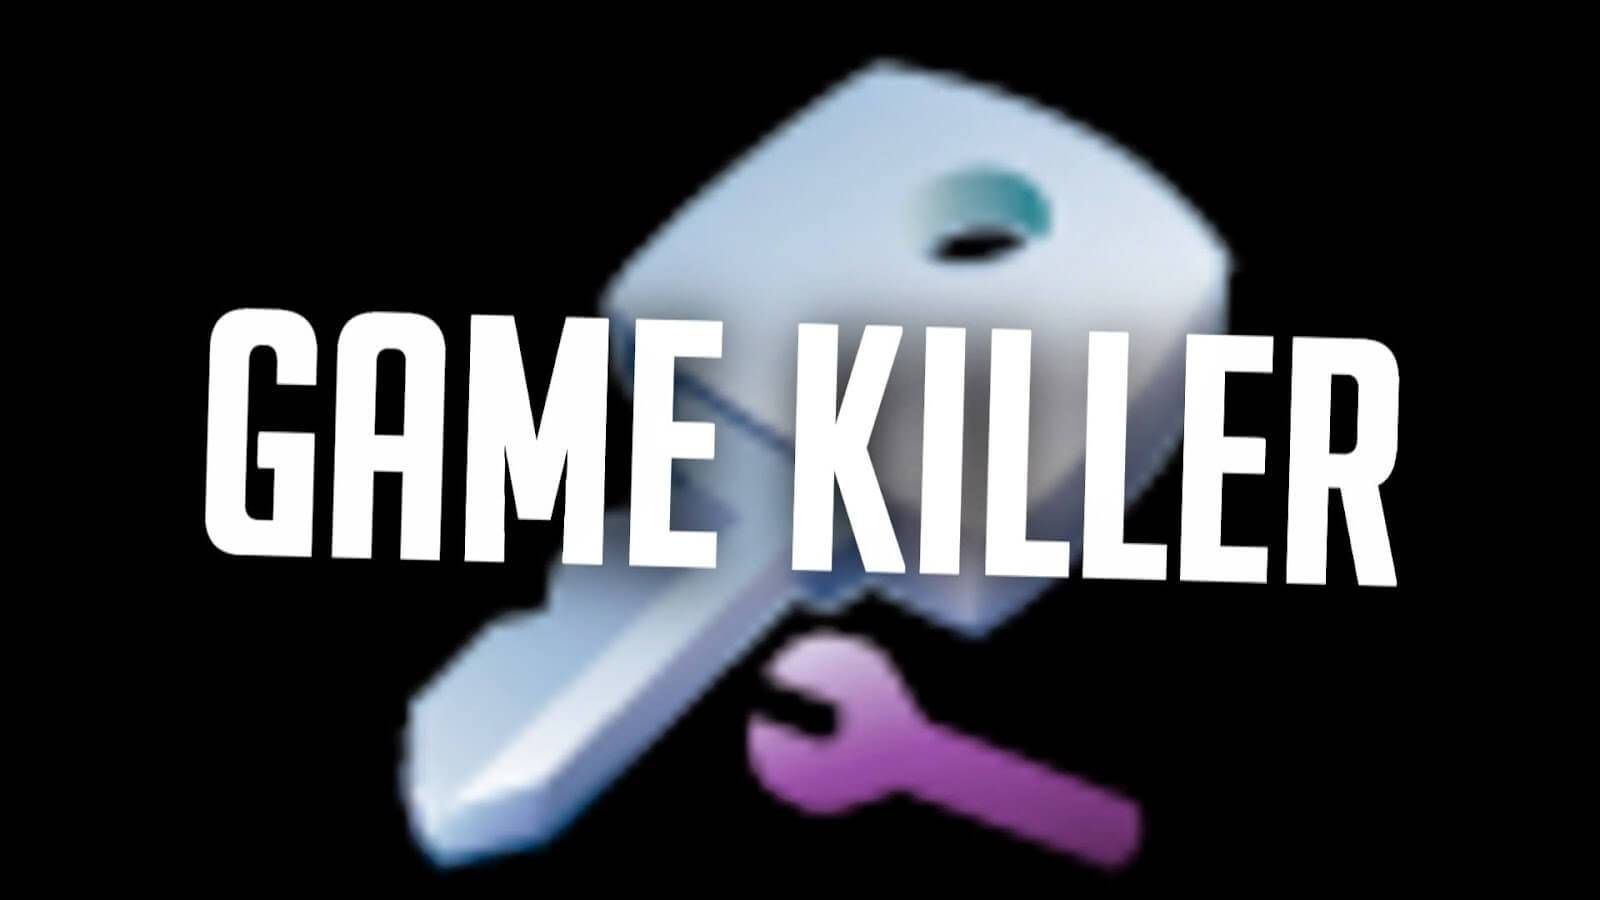 game killer 3.11 apk no root download for android